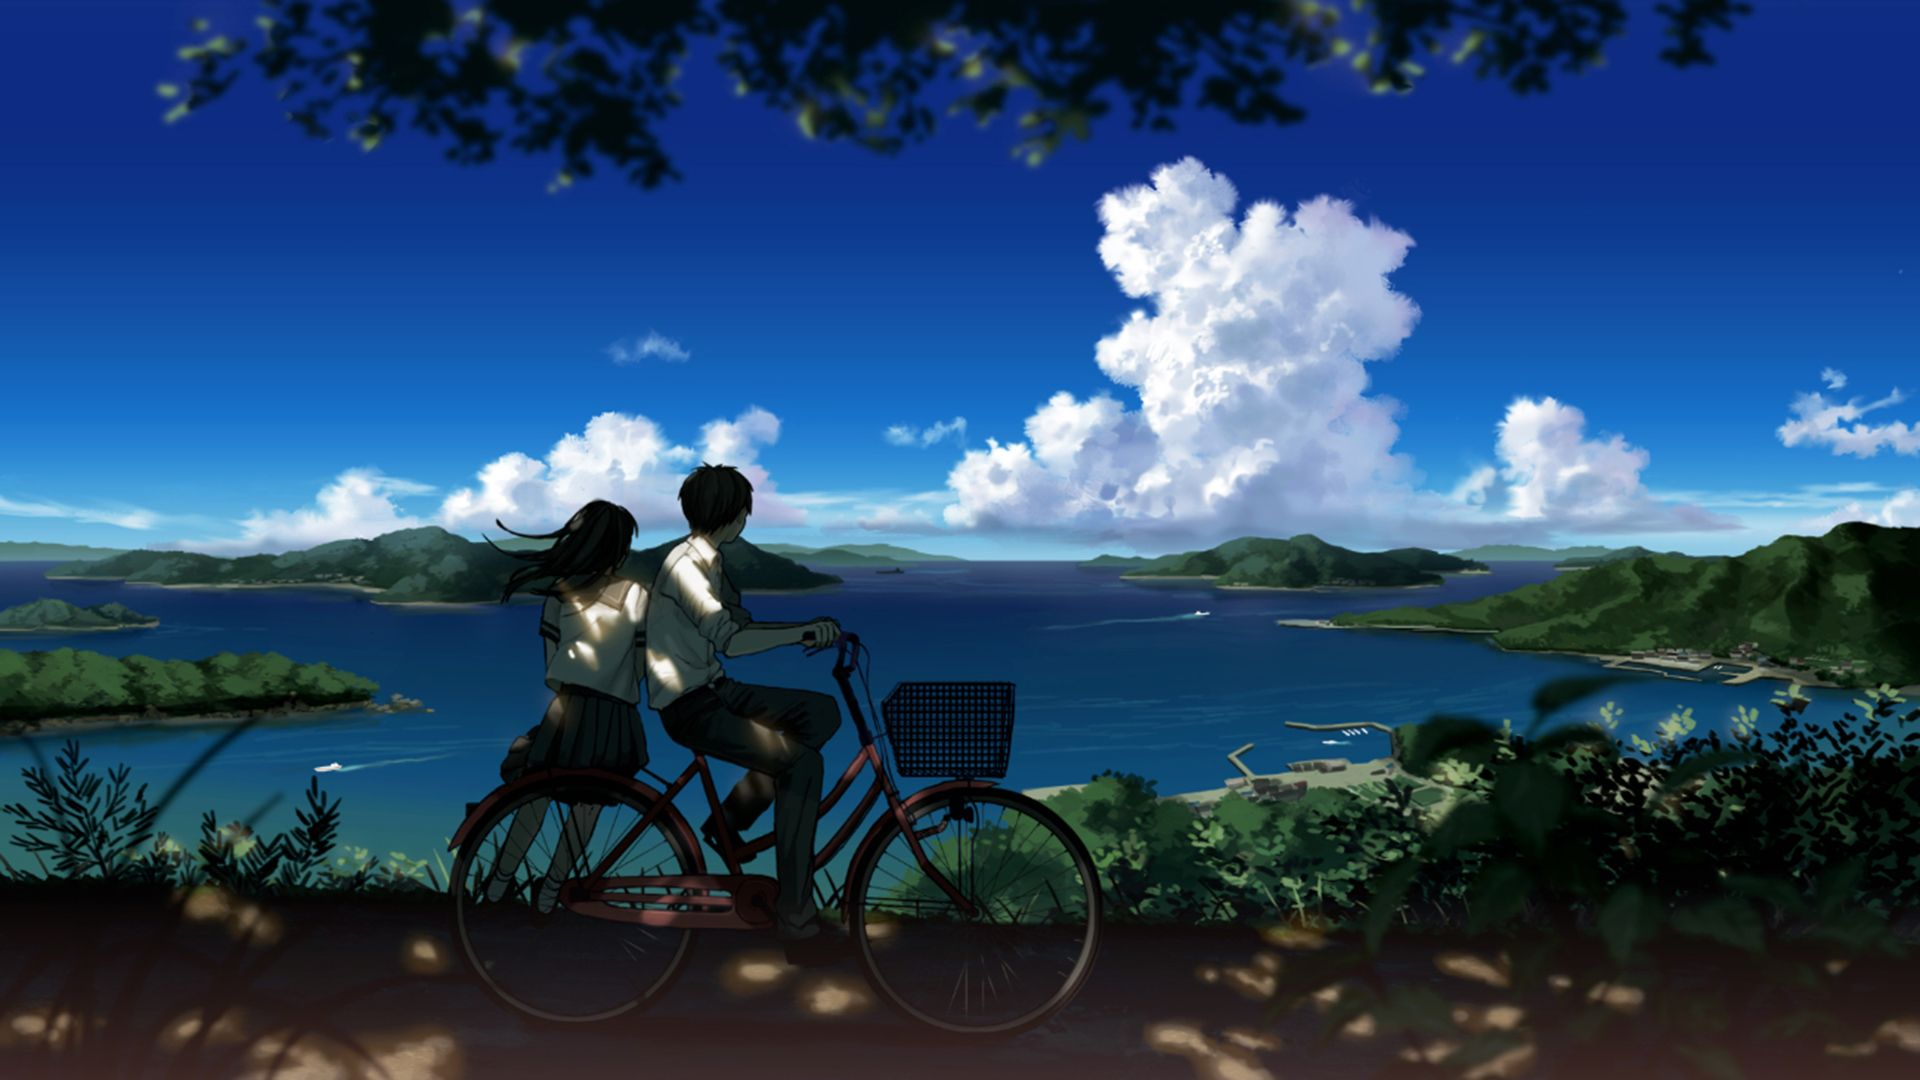 Anime Scenery Wallpaper Phone Sdeerwallpaper Anime Art Anime